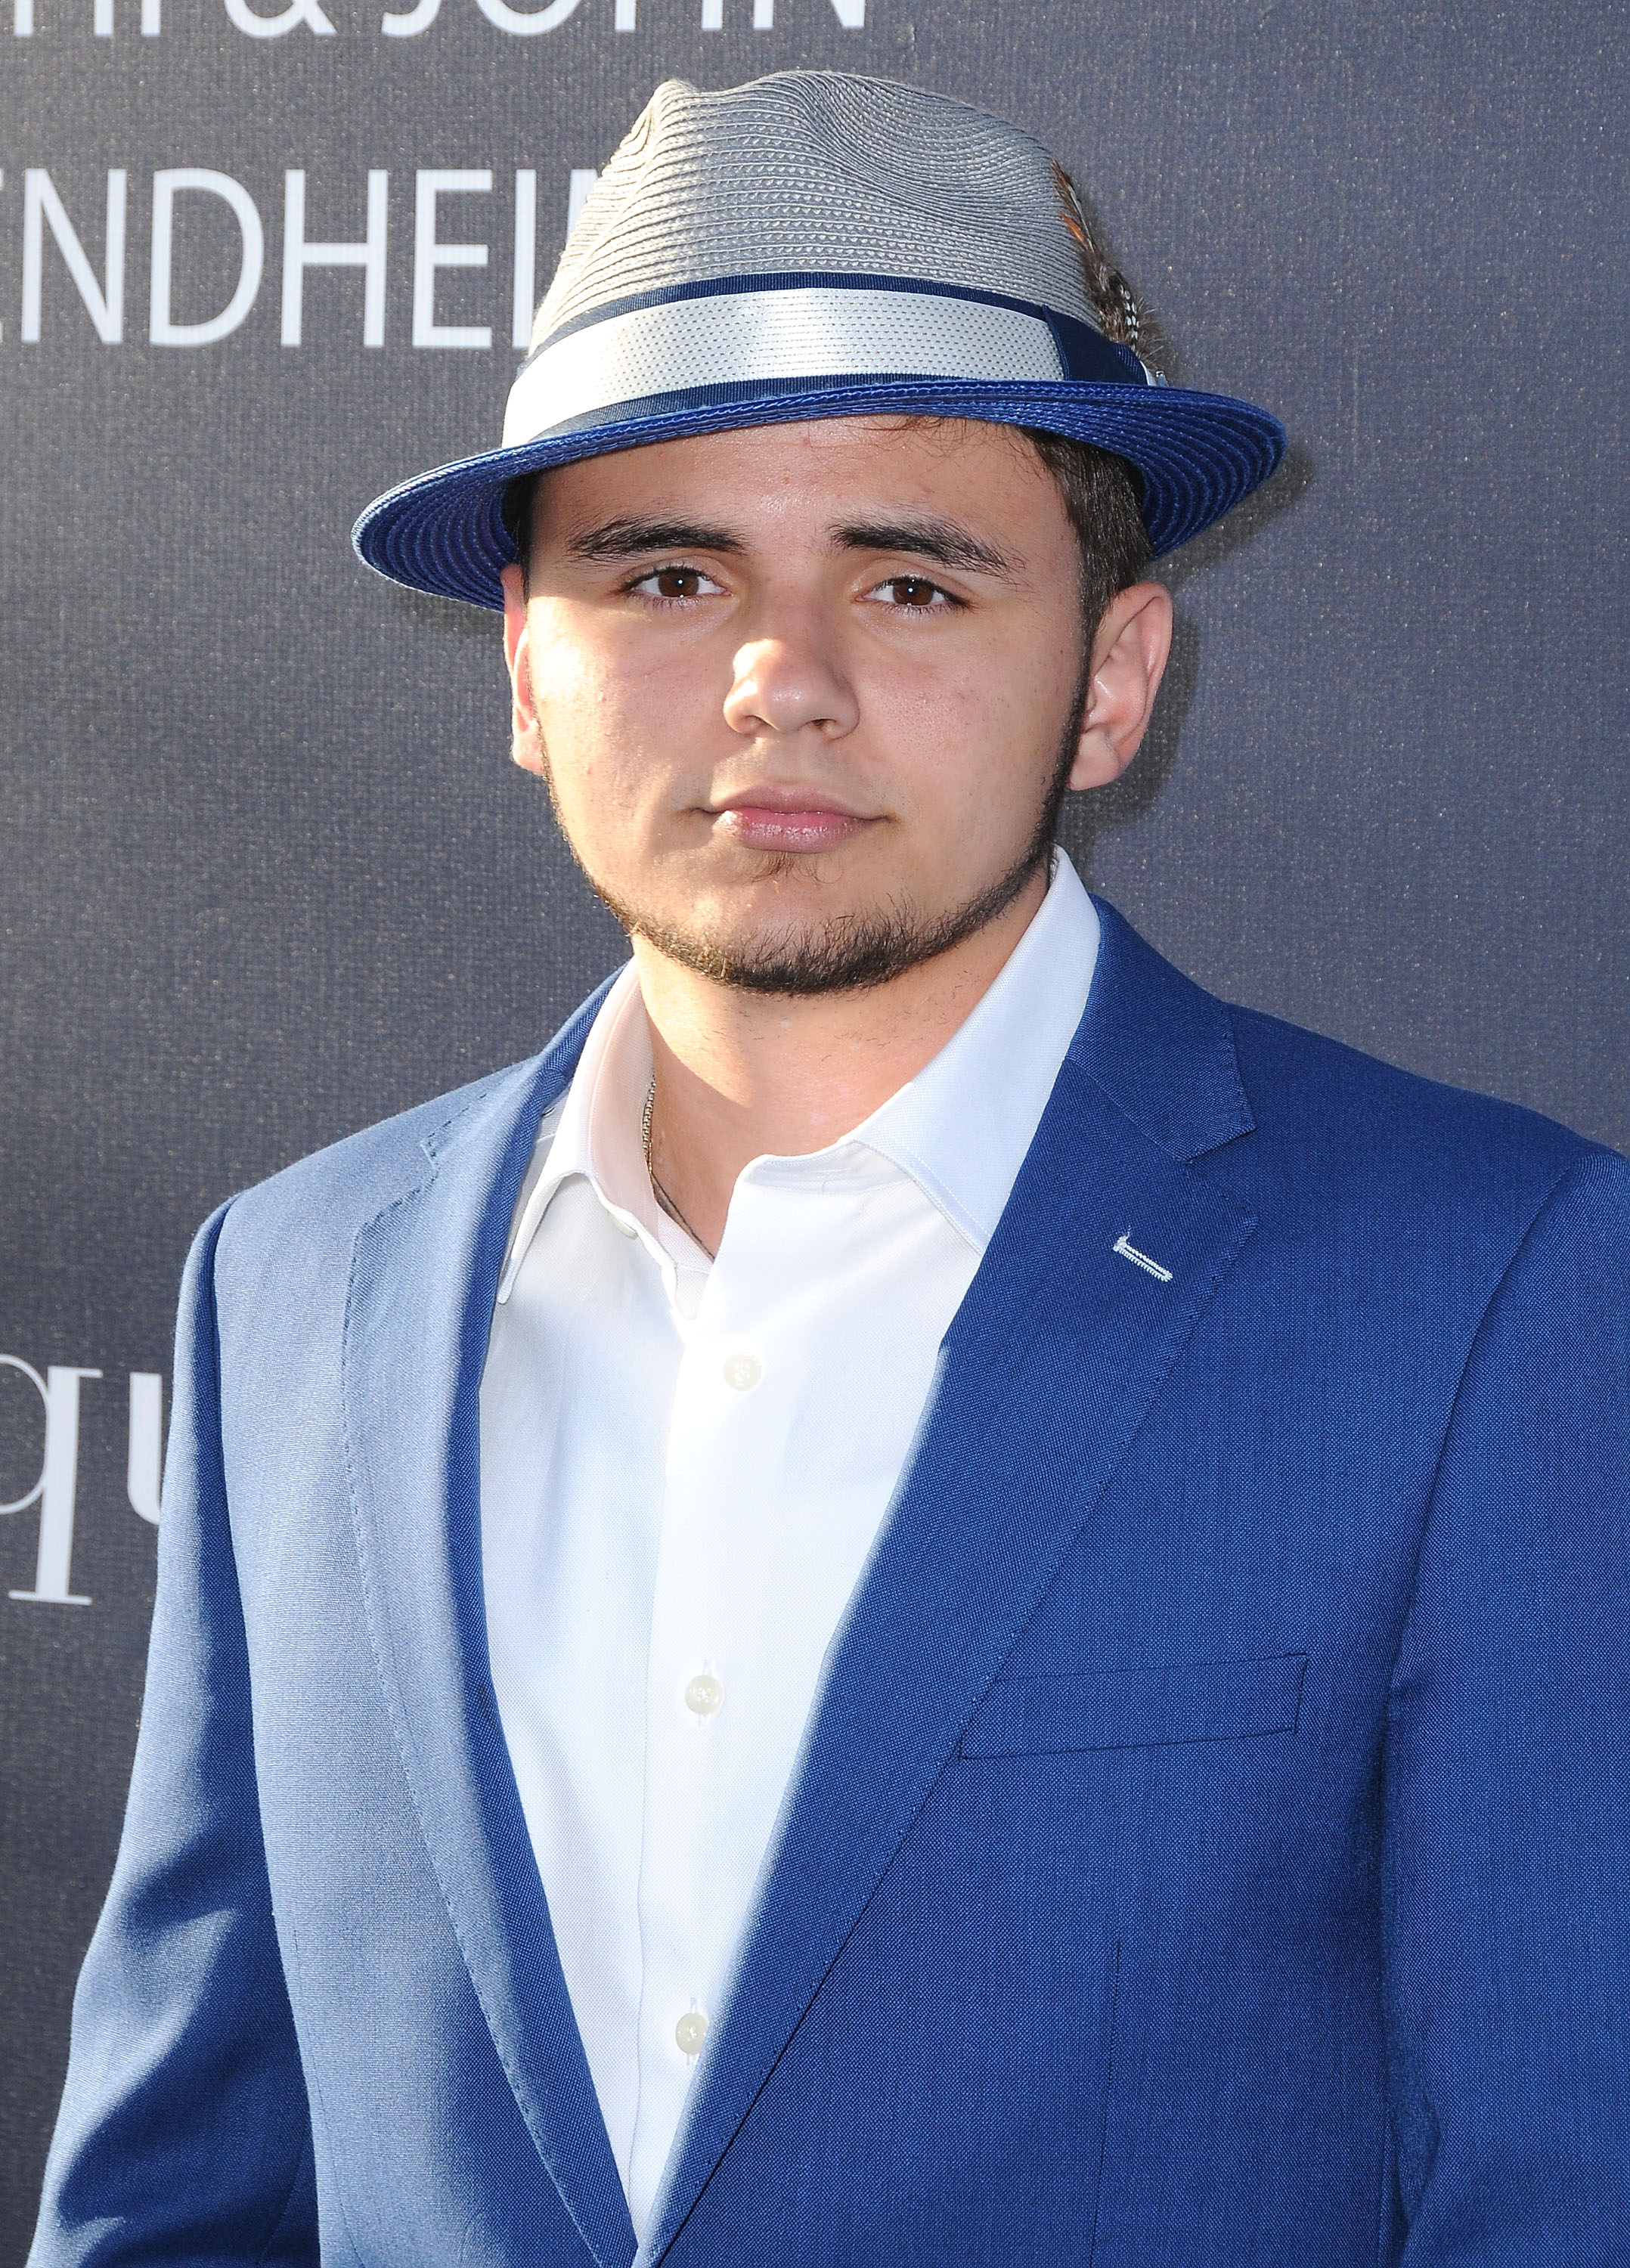 Prince Jackson attends Los Angeles Dodgers Foundation's 3rd Annual Blue Diamond Gala at Dodger Stadium on June 8, 2017, in Los Angeles, California. | Source: Getty Images.